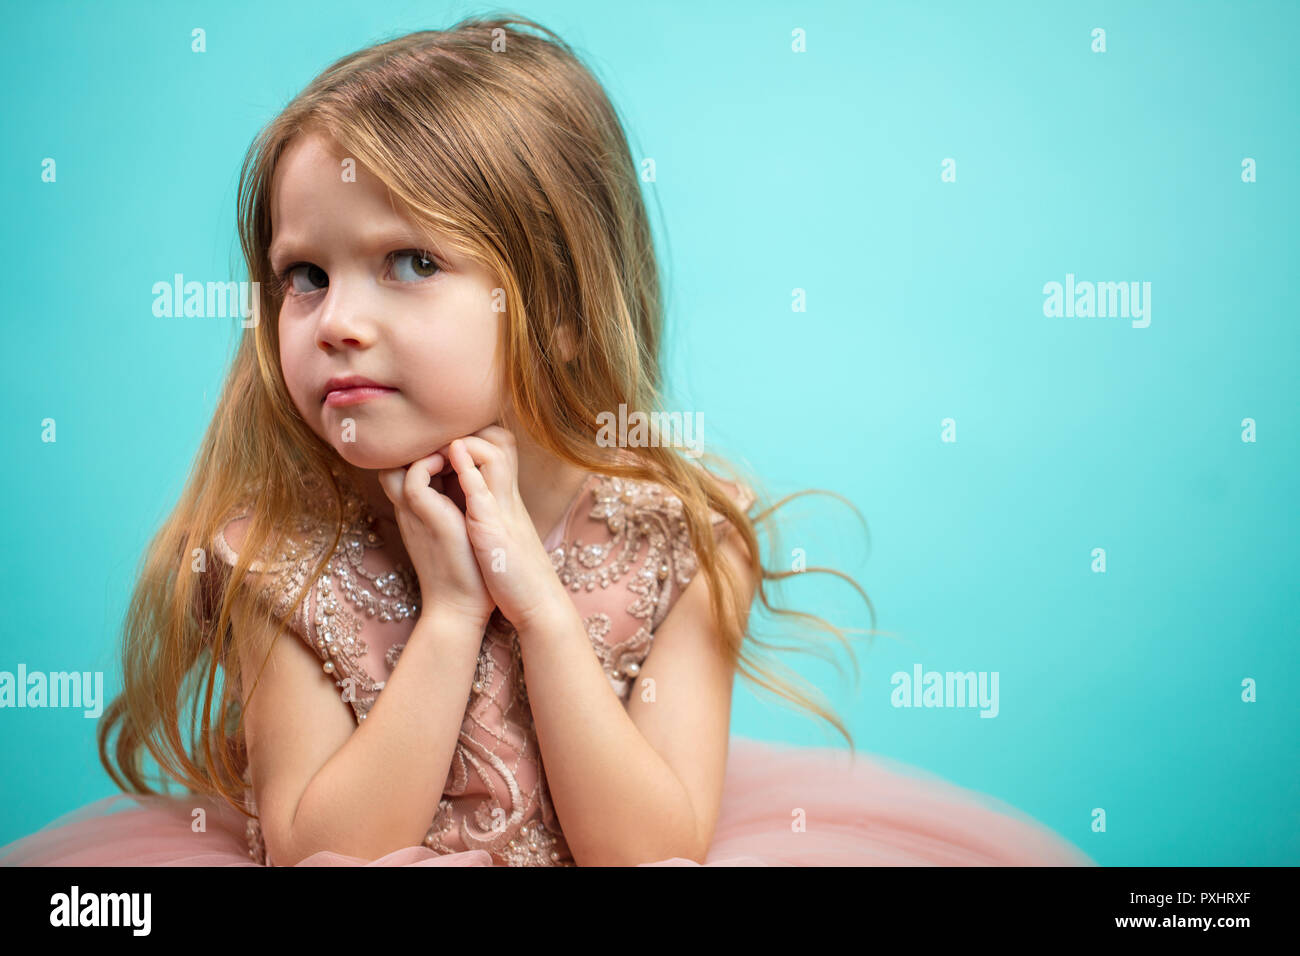 Little Caucasian female child in pink dress with naughty and resentful face expression. - Stock Image